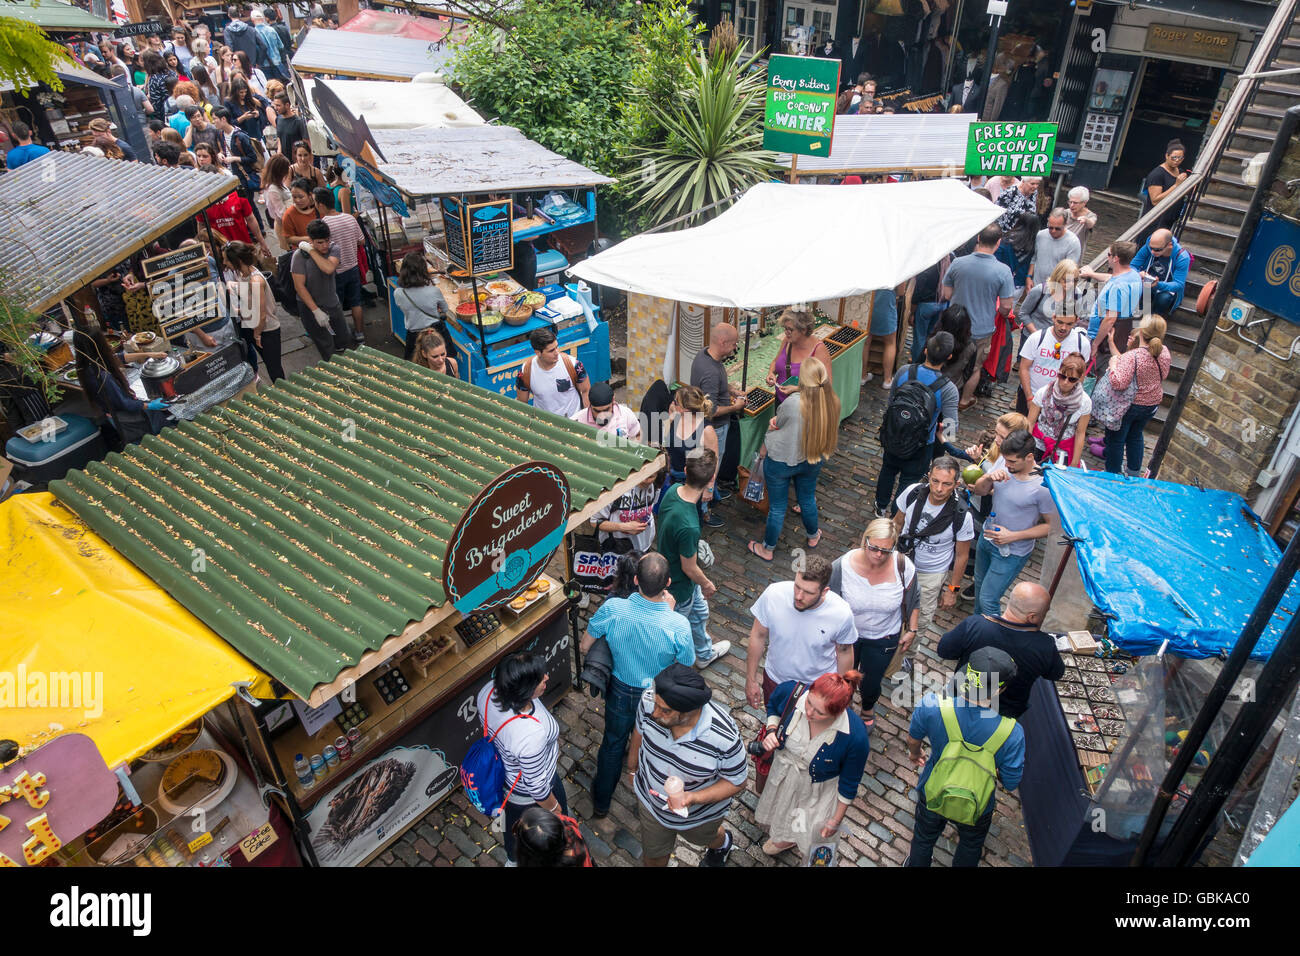 Belebten Camden Market Street Food Ständen Camden London UK Stockbild